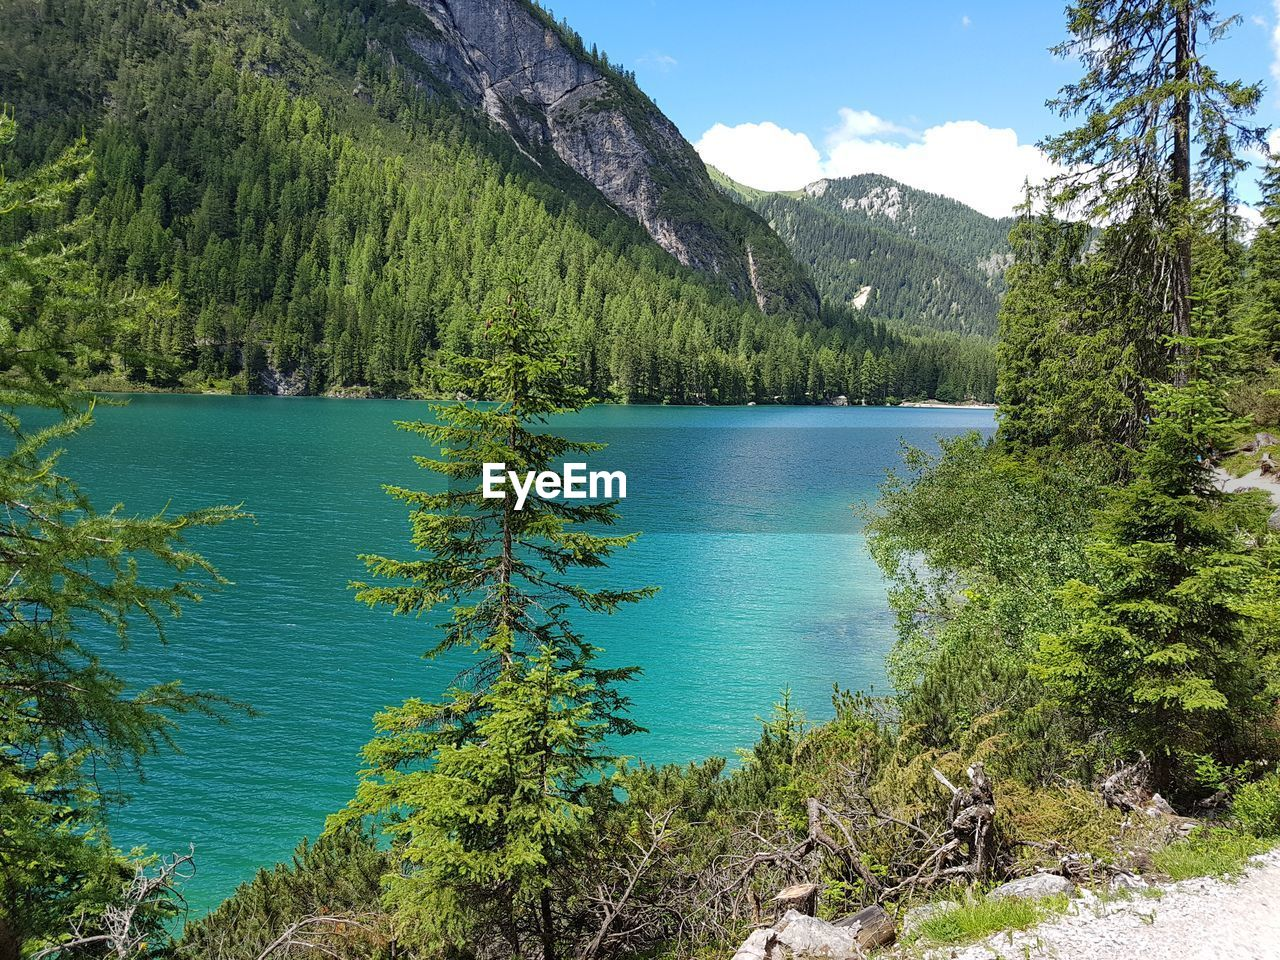 water, plant, beauty in nature, tranquility, scenics - nature, tranquil scene, tree, mountain, green color, lake, growth, nature, non-urban scene, no people, idyllic, day, sky, forest, land, outdoors, coniferous tree